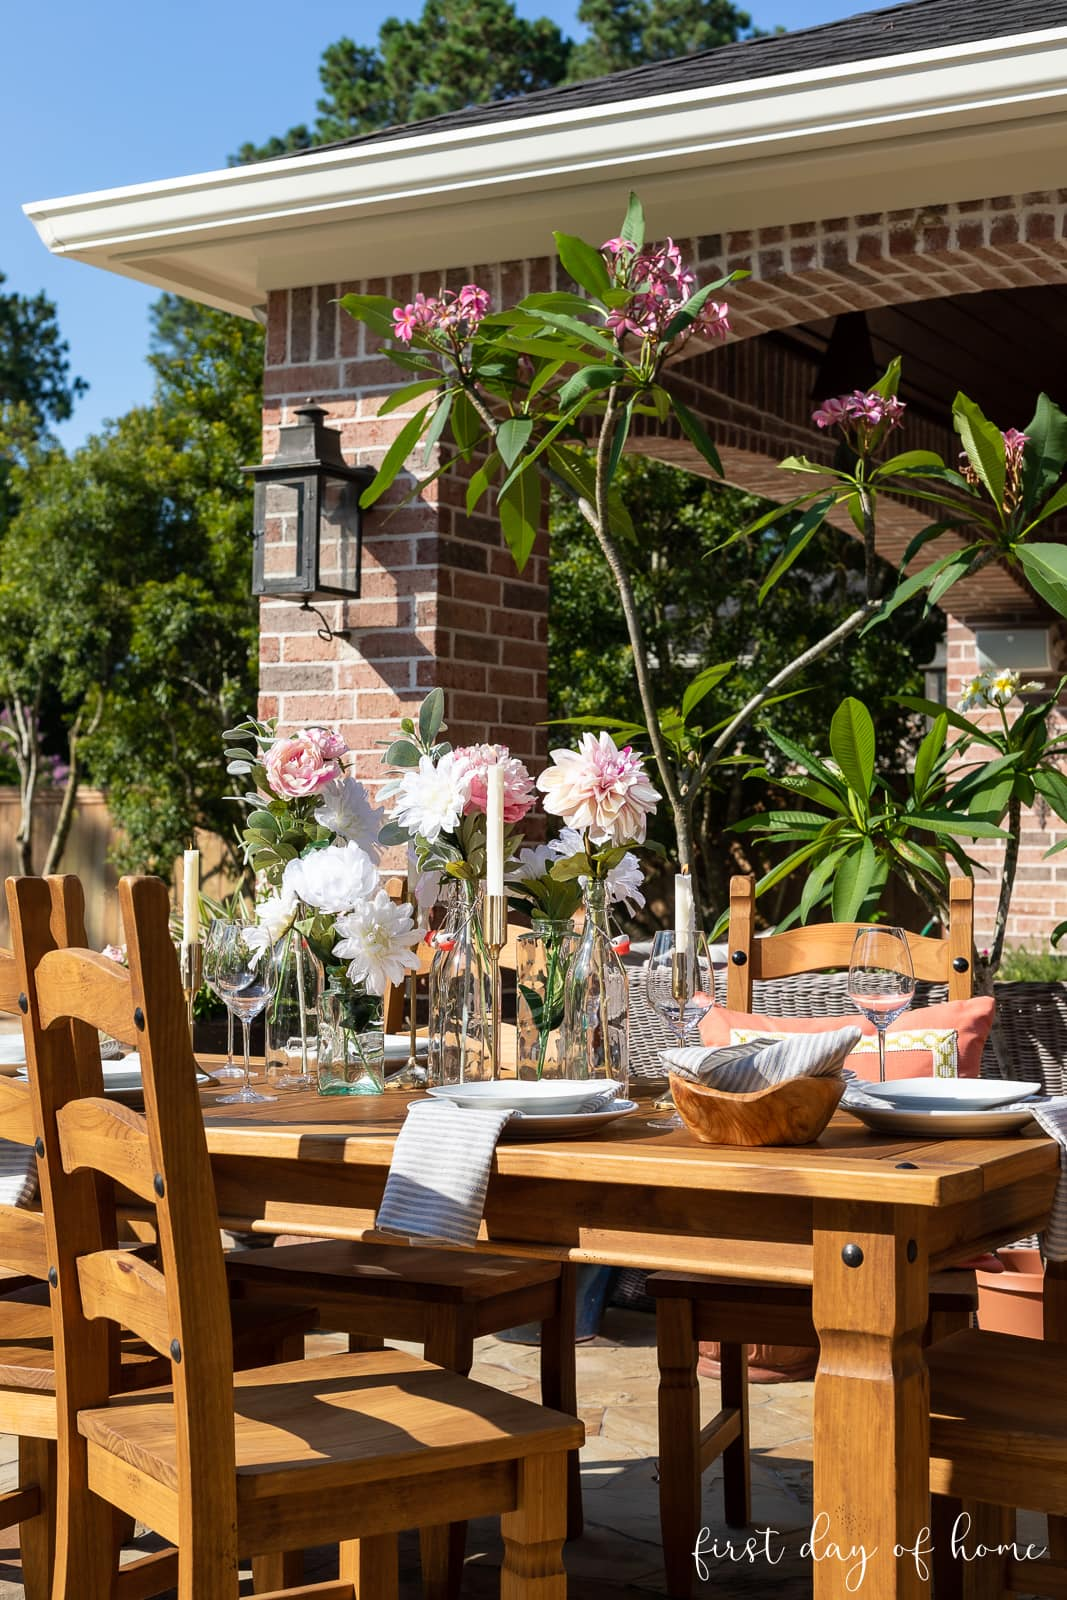 Outdoor table with floral centerpiece